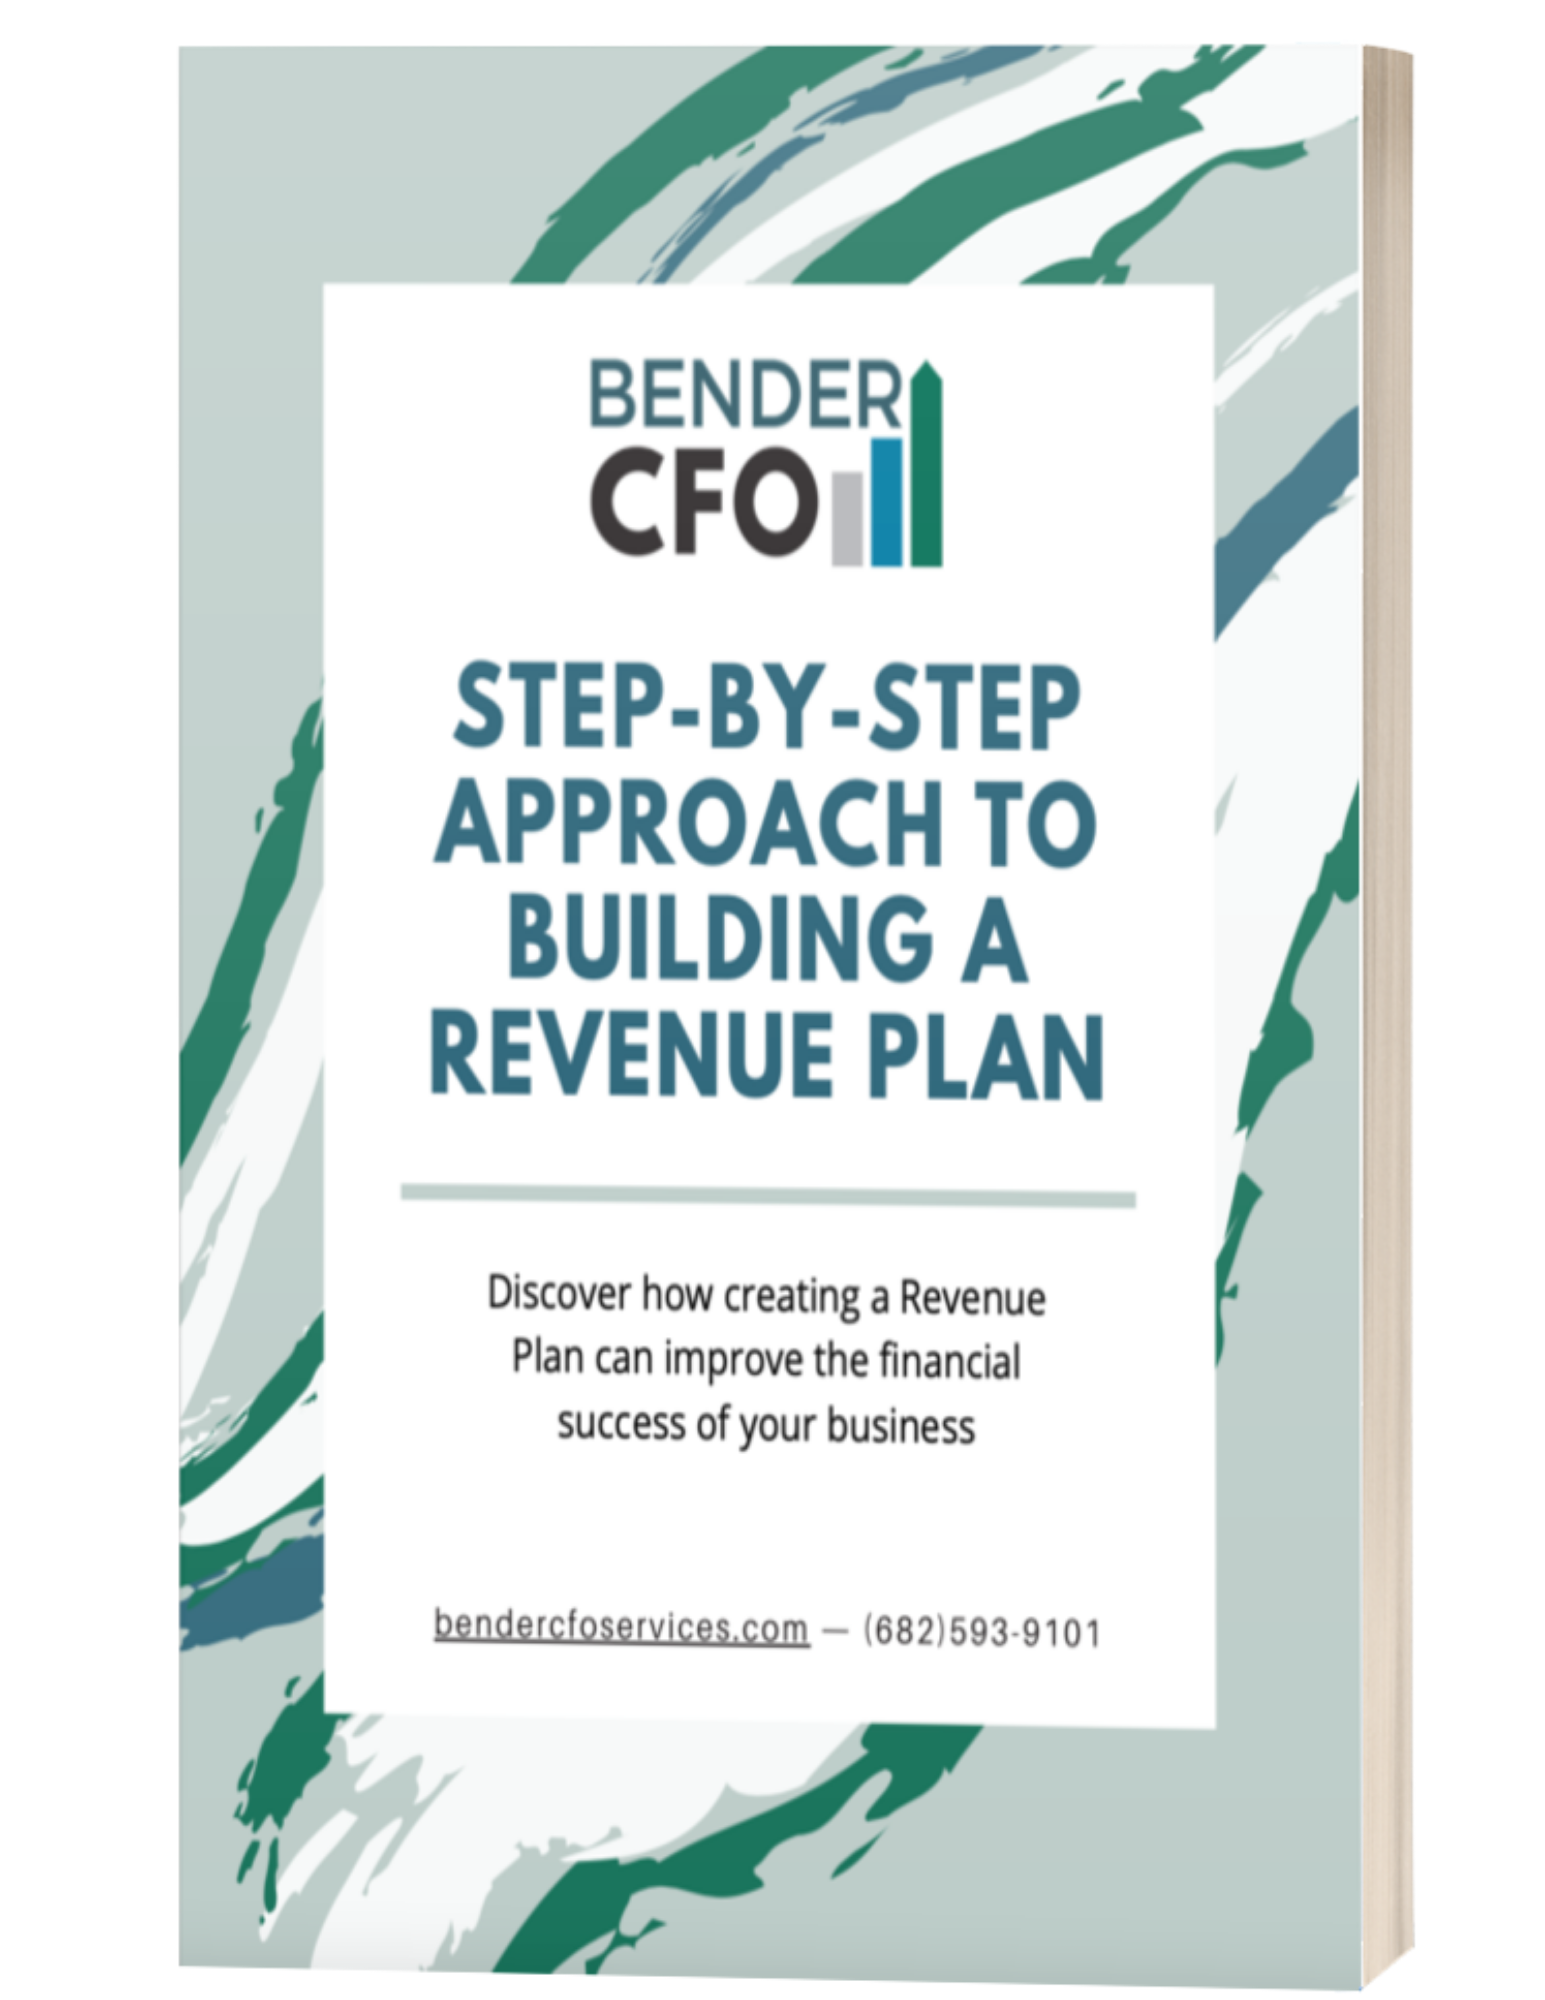 Step-By-Step Approach to Building a Revenue Plan